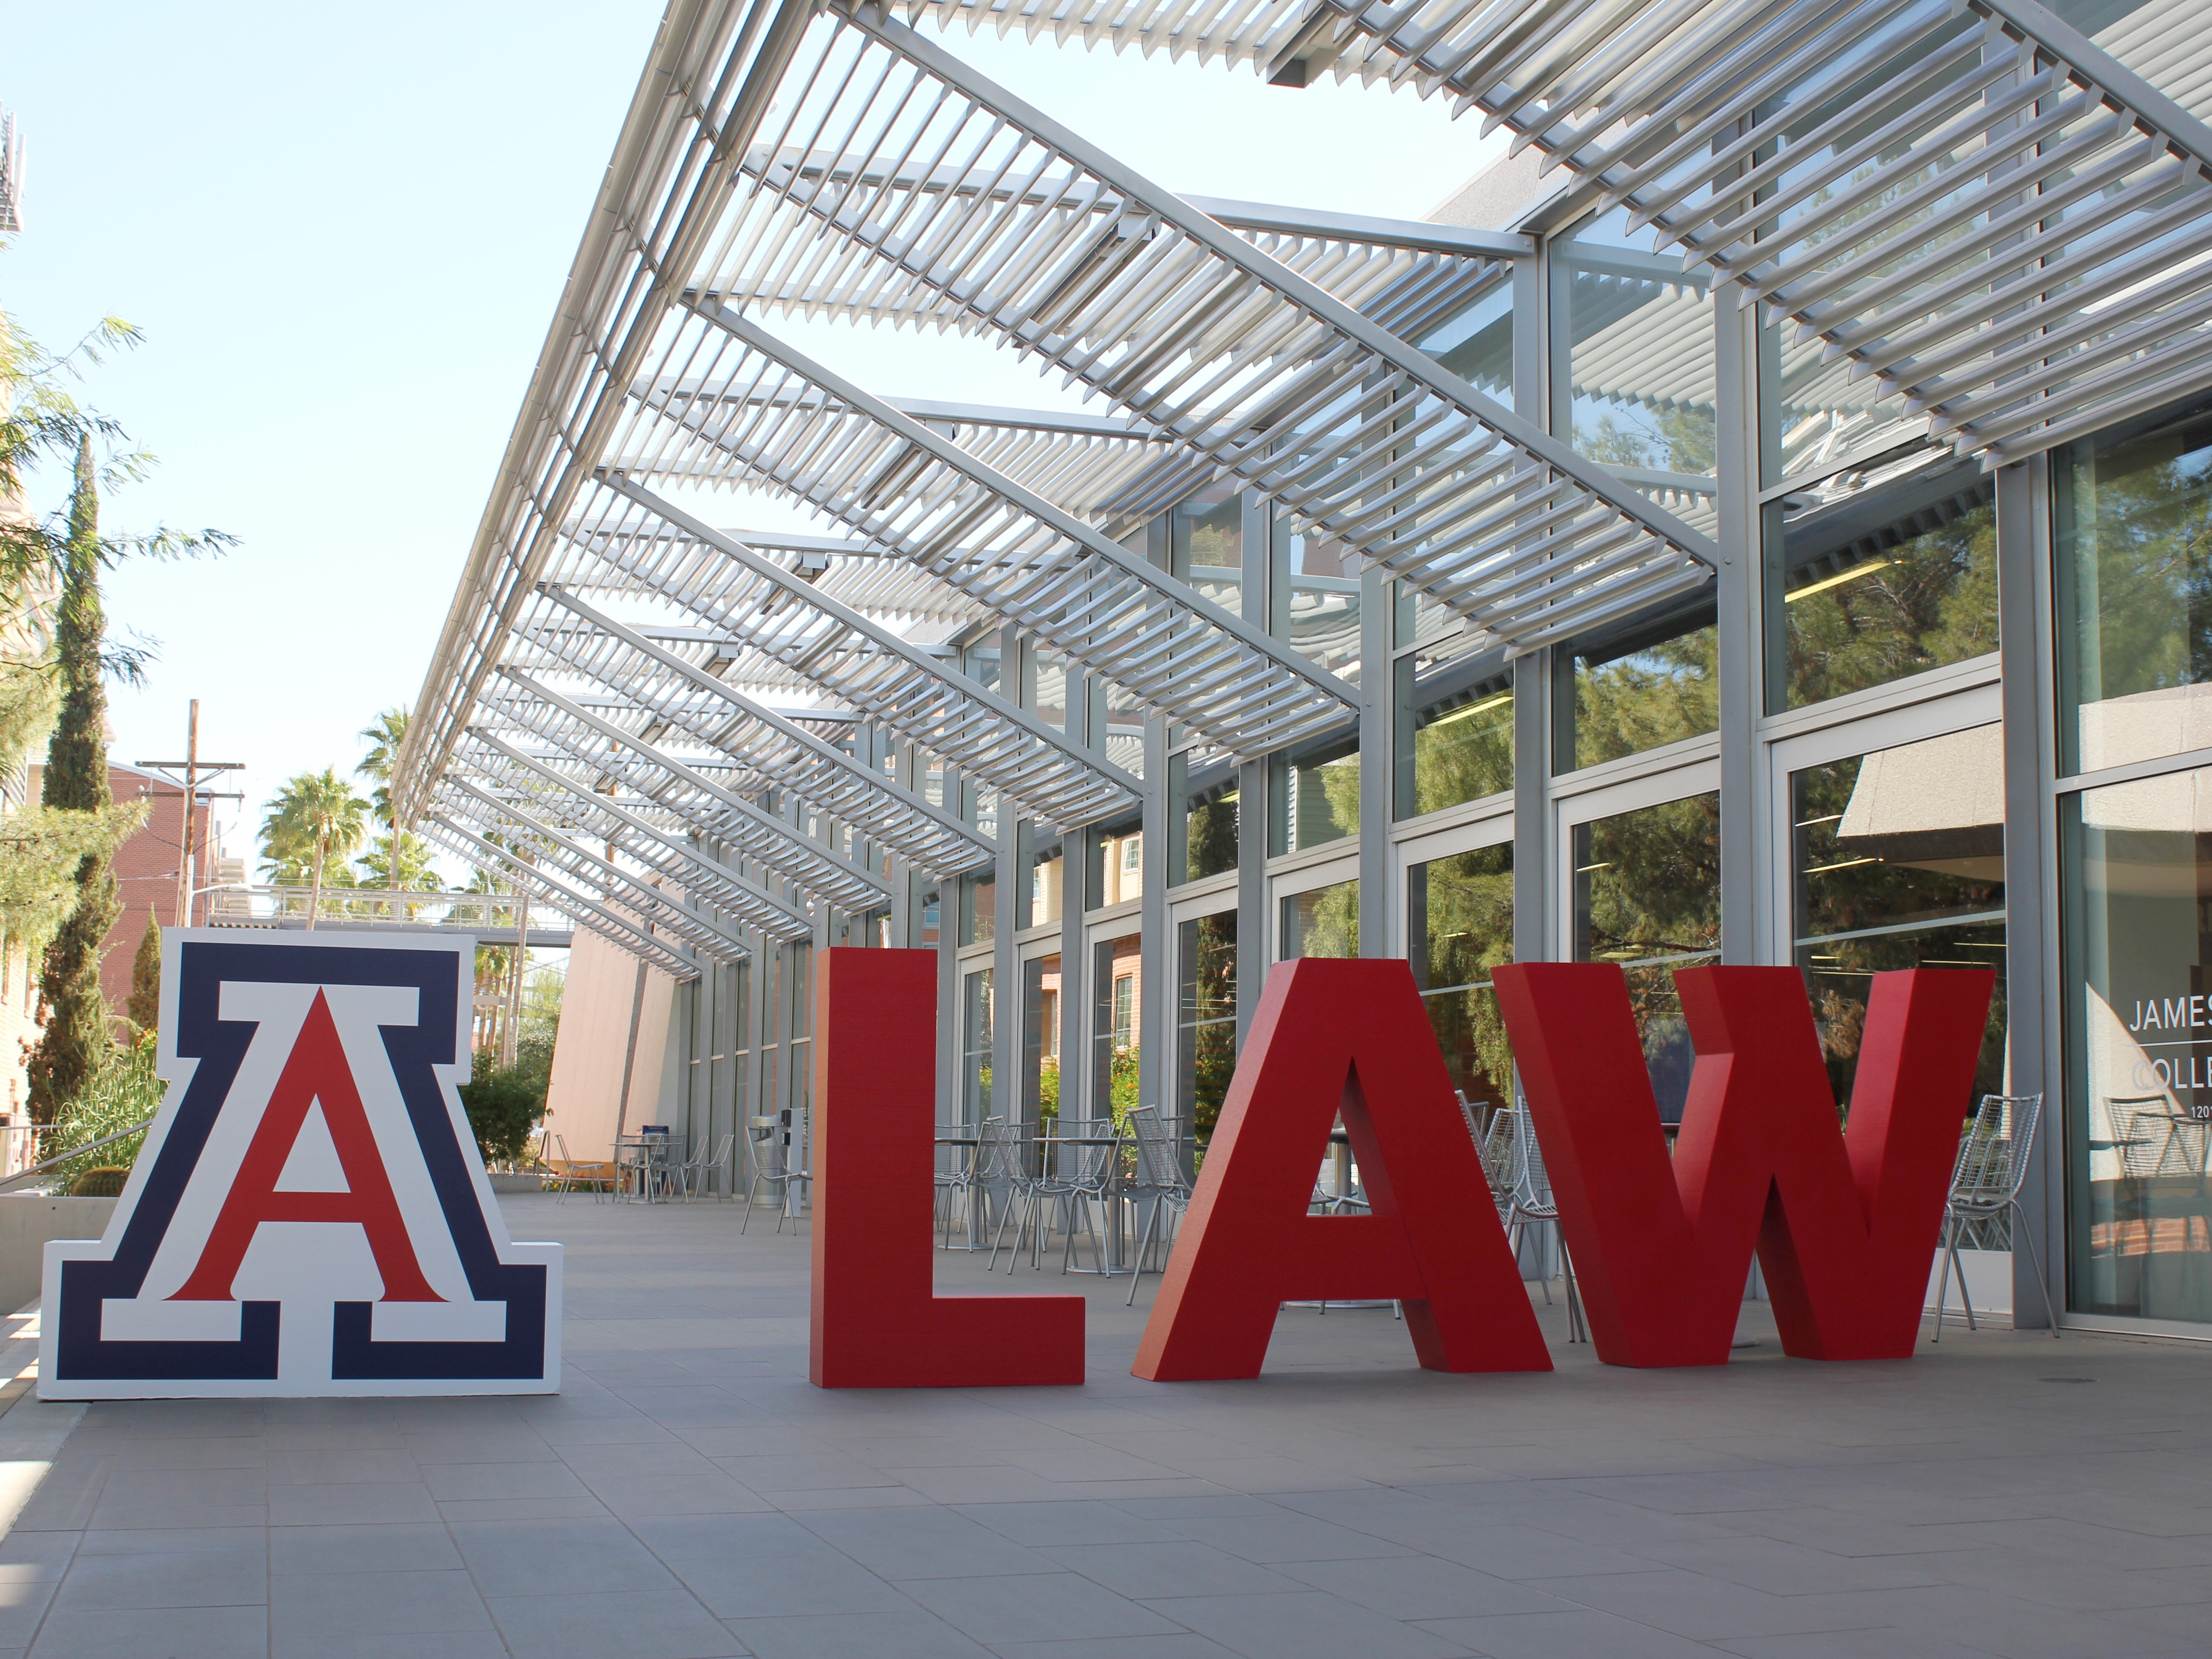 A LAW letters in Arizona Law courtyard